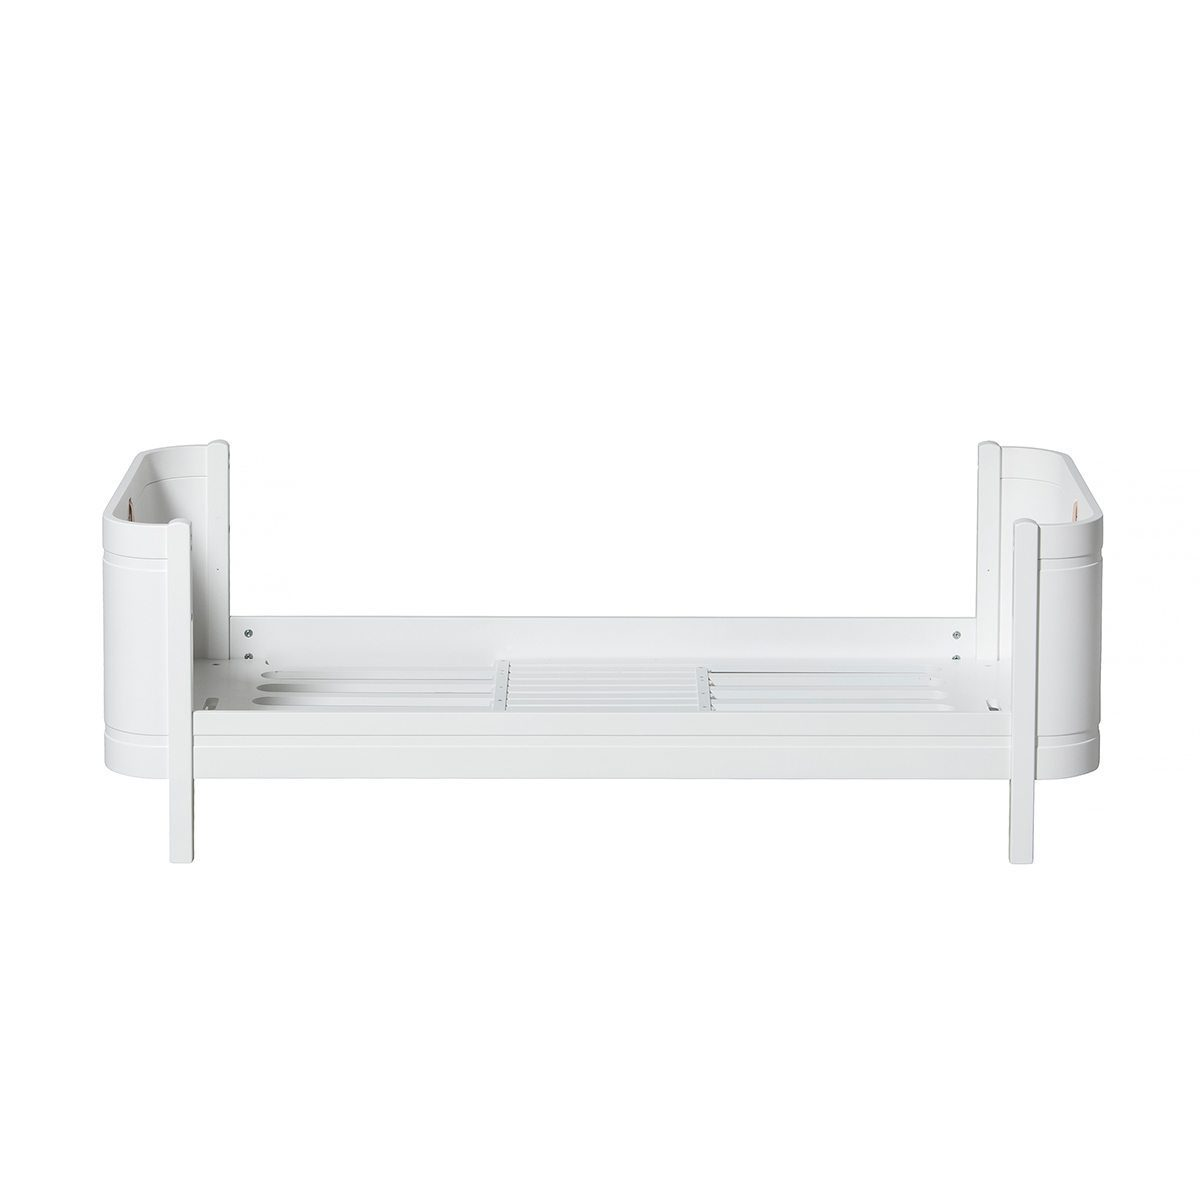 Oliver Furniture Ledikant Wood Mini+ white10